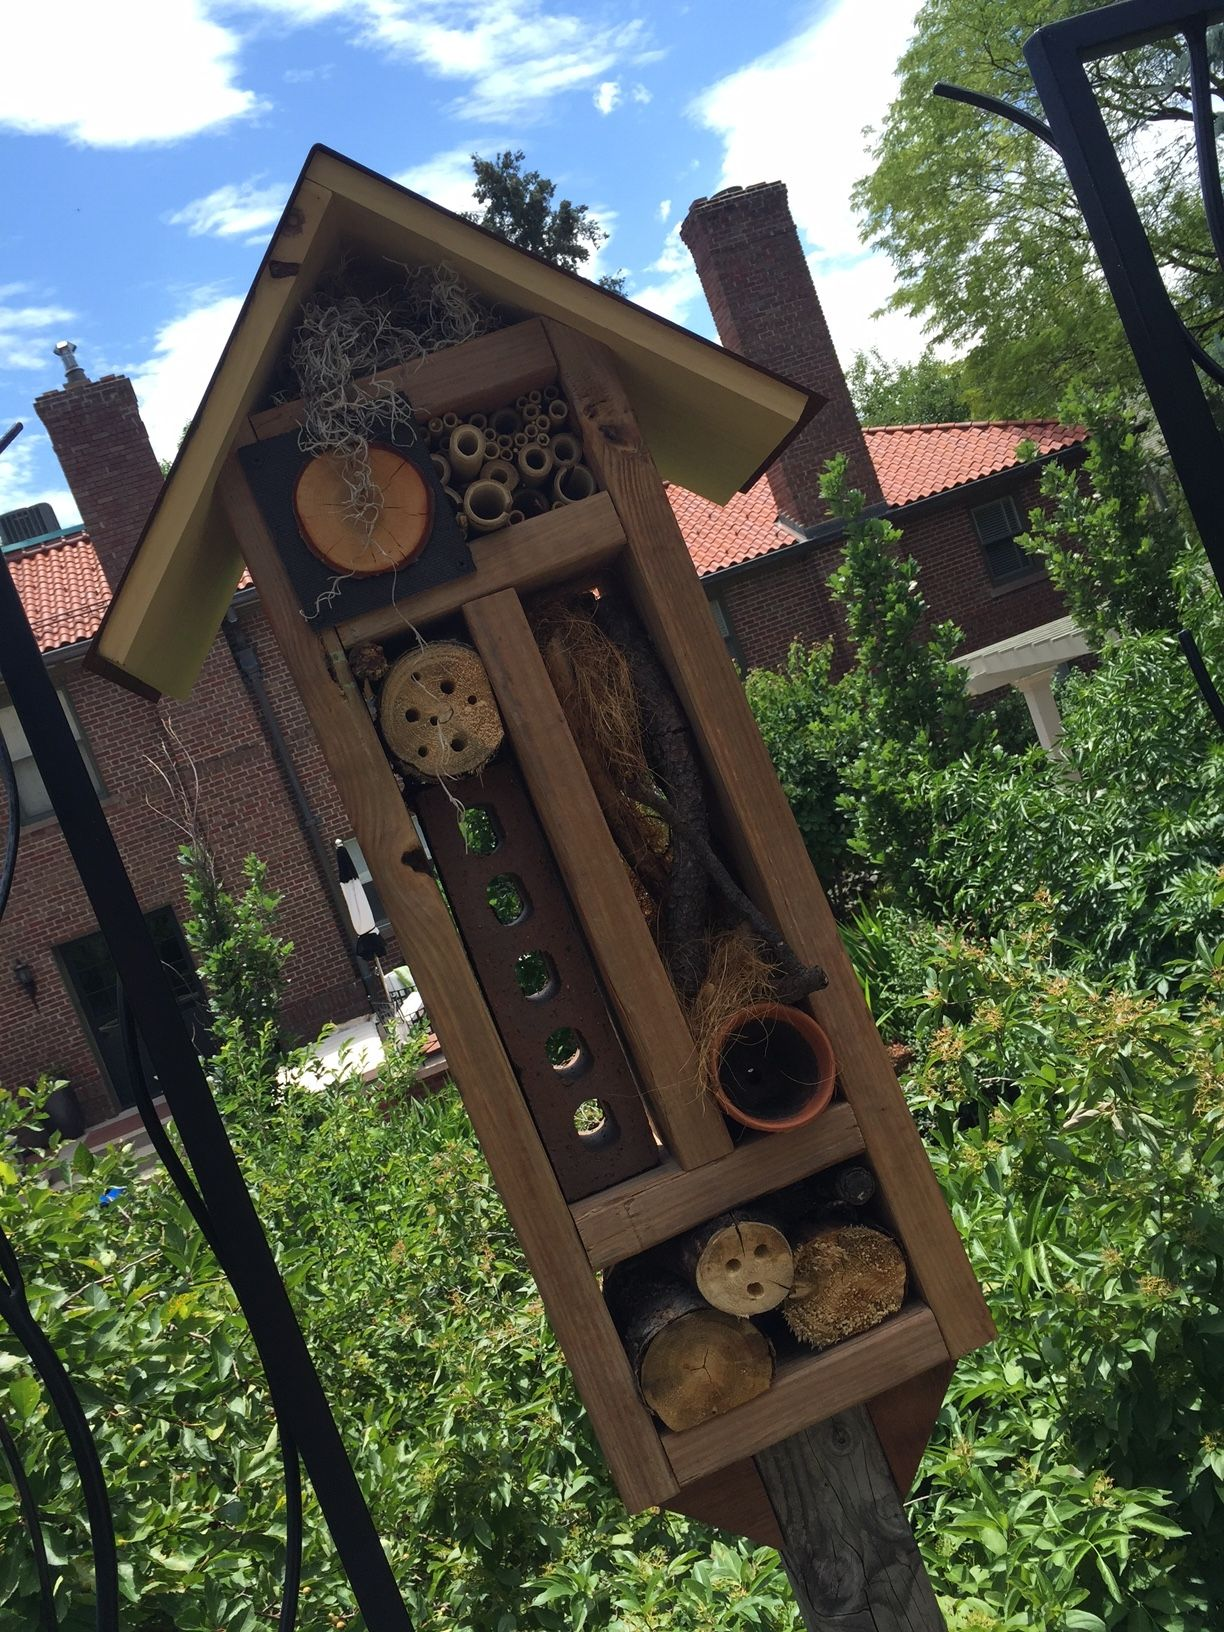 Insect hotel Denver Botanic Gardens July 2016 (With